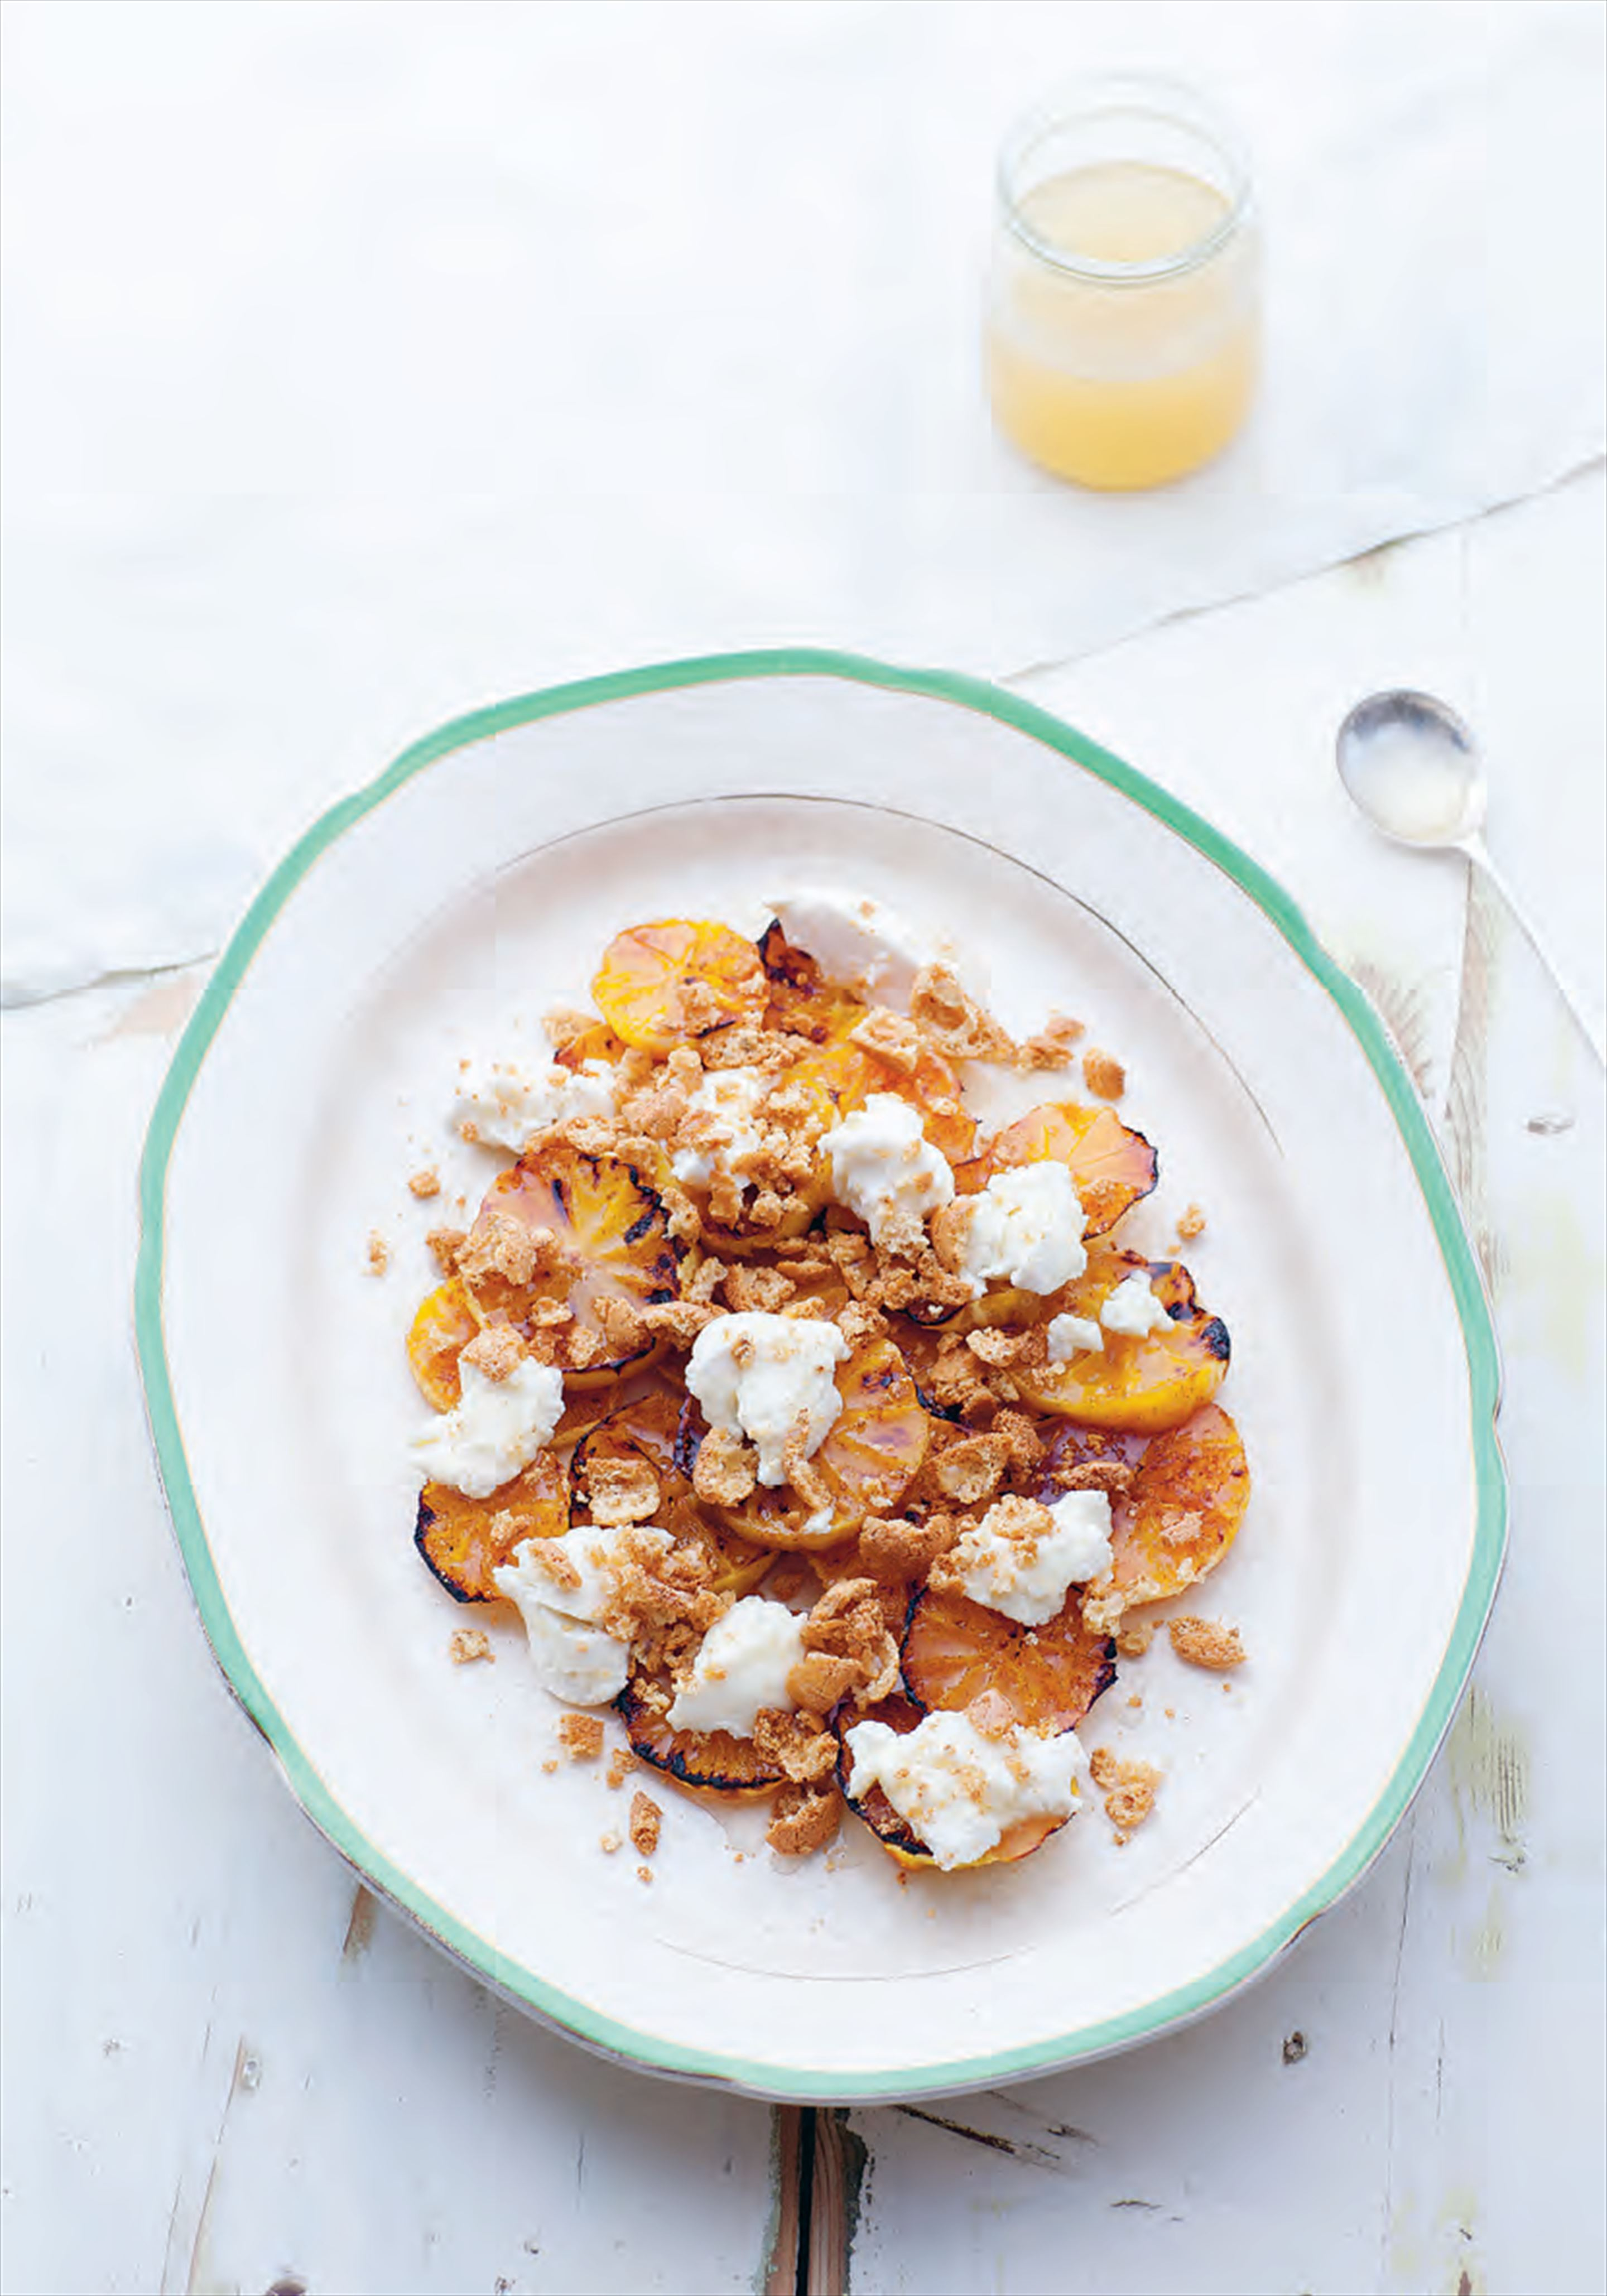 Oranges grilled with honey and cinnamon with ricotta and amaretti